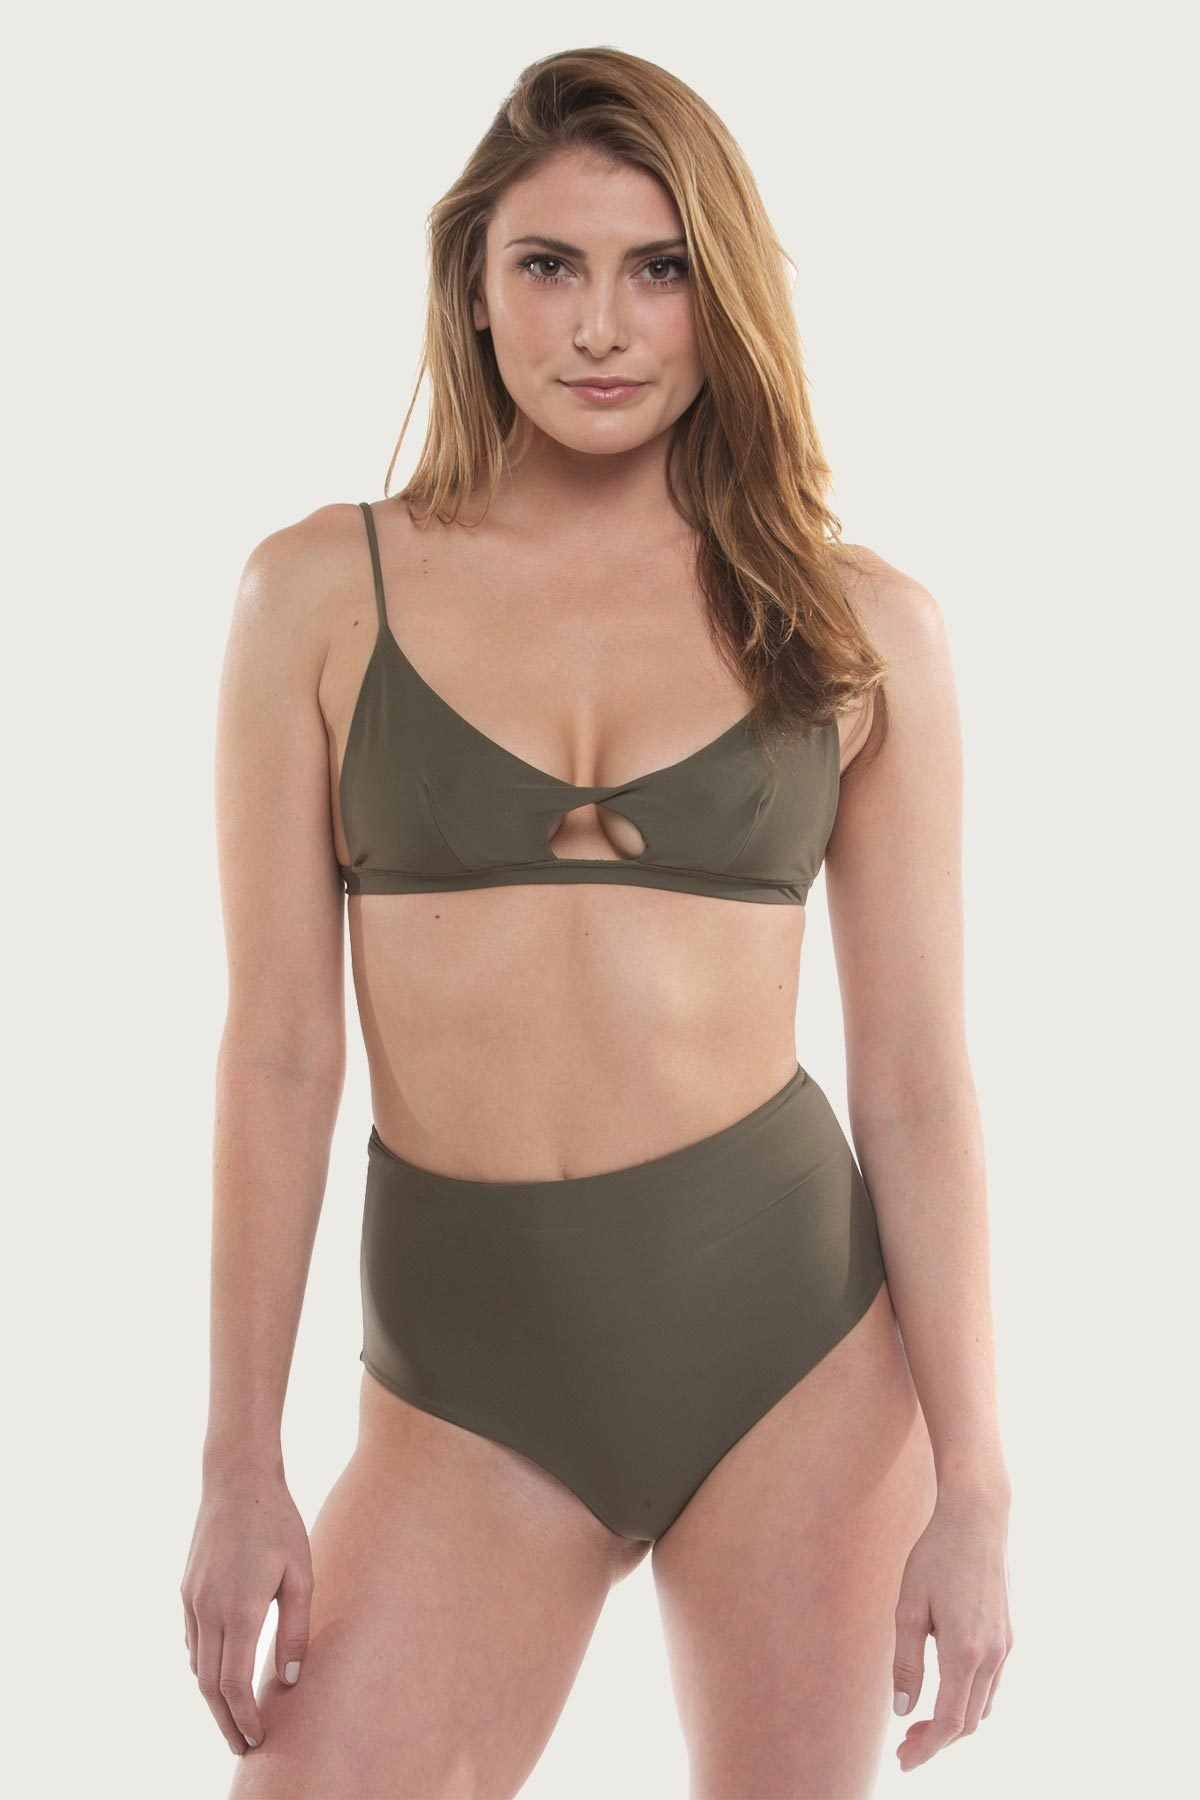 The Jetty Top - Olive Green - The Bikini Movement